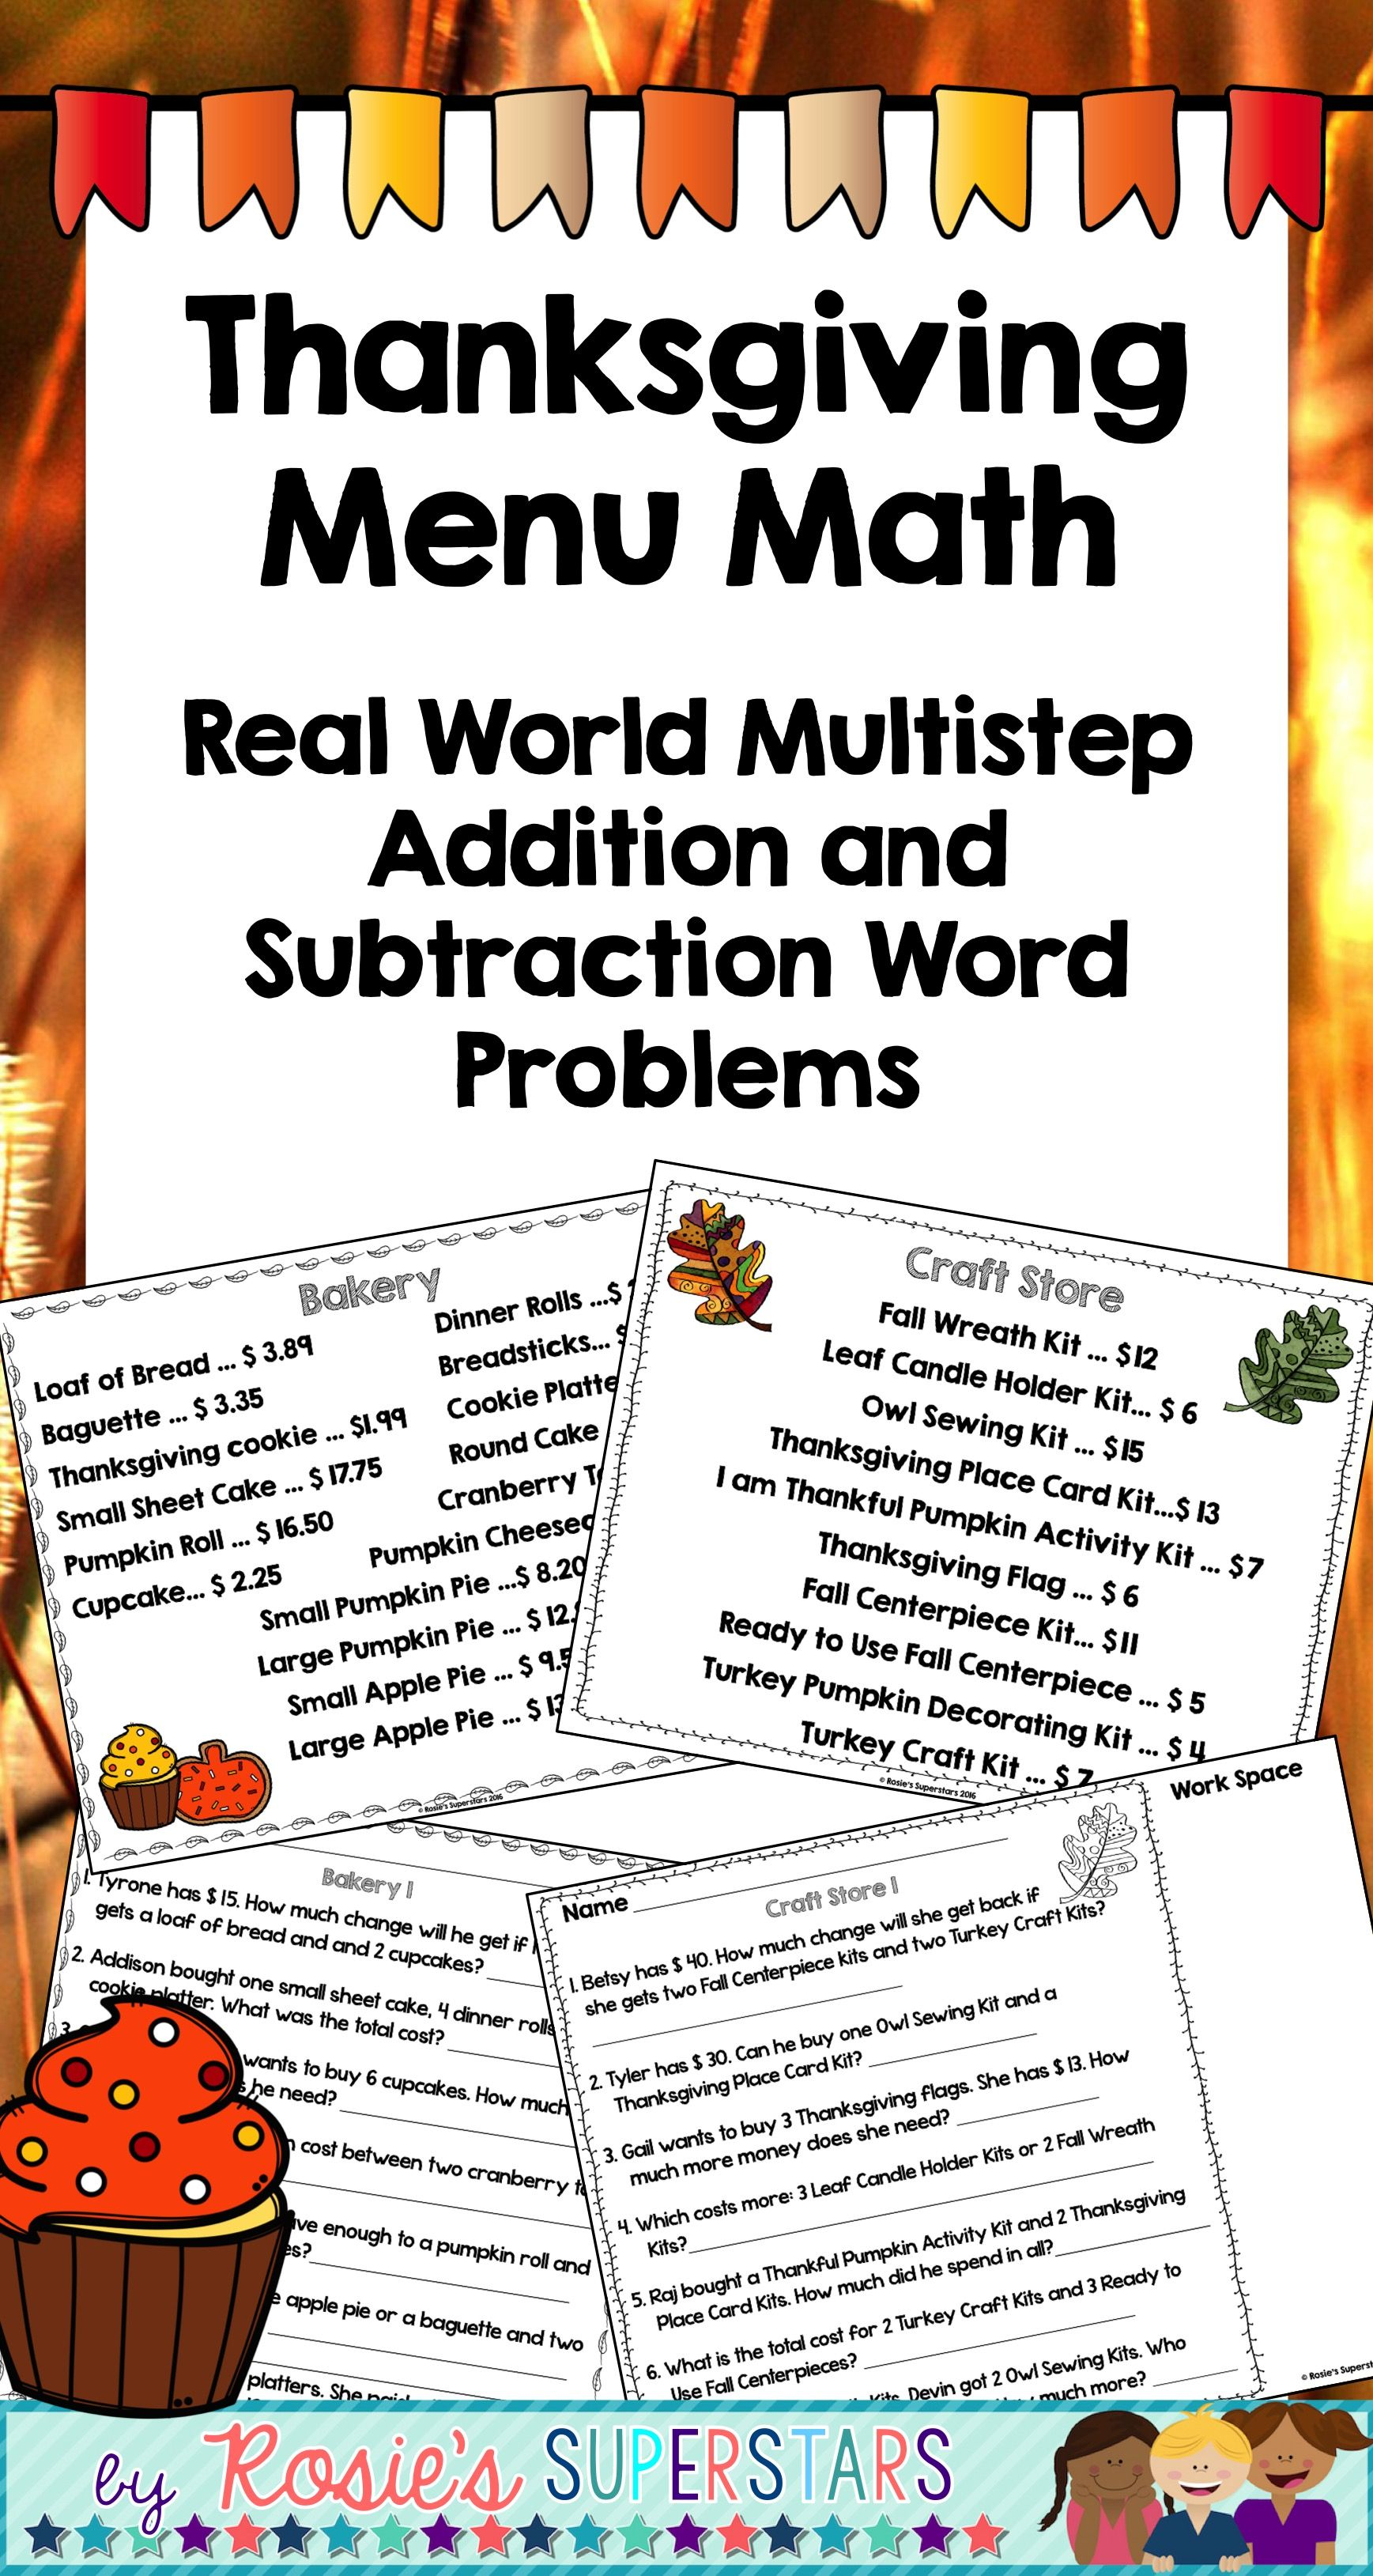 Real World Math Use These Differentiated Menus For Students To Practice Real World Math Skills There Subtraction Word Problems Word Problems Math Worksheets